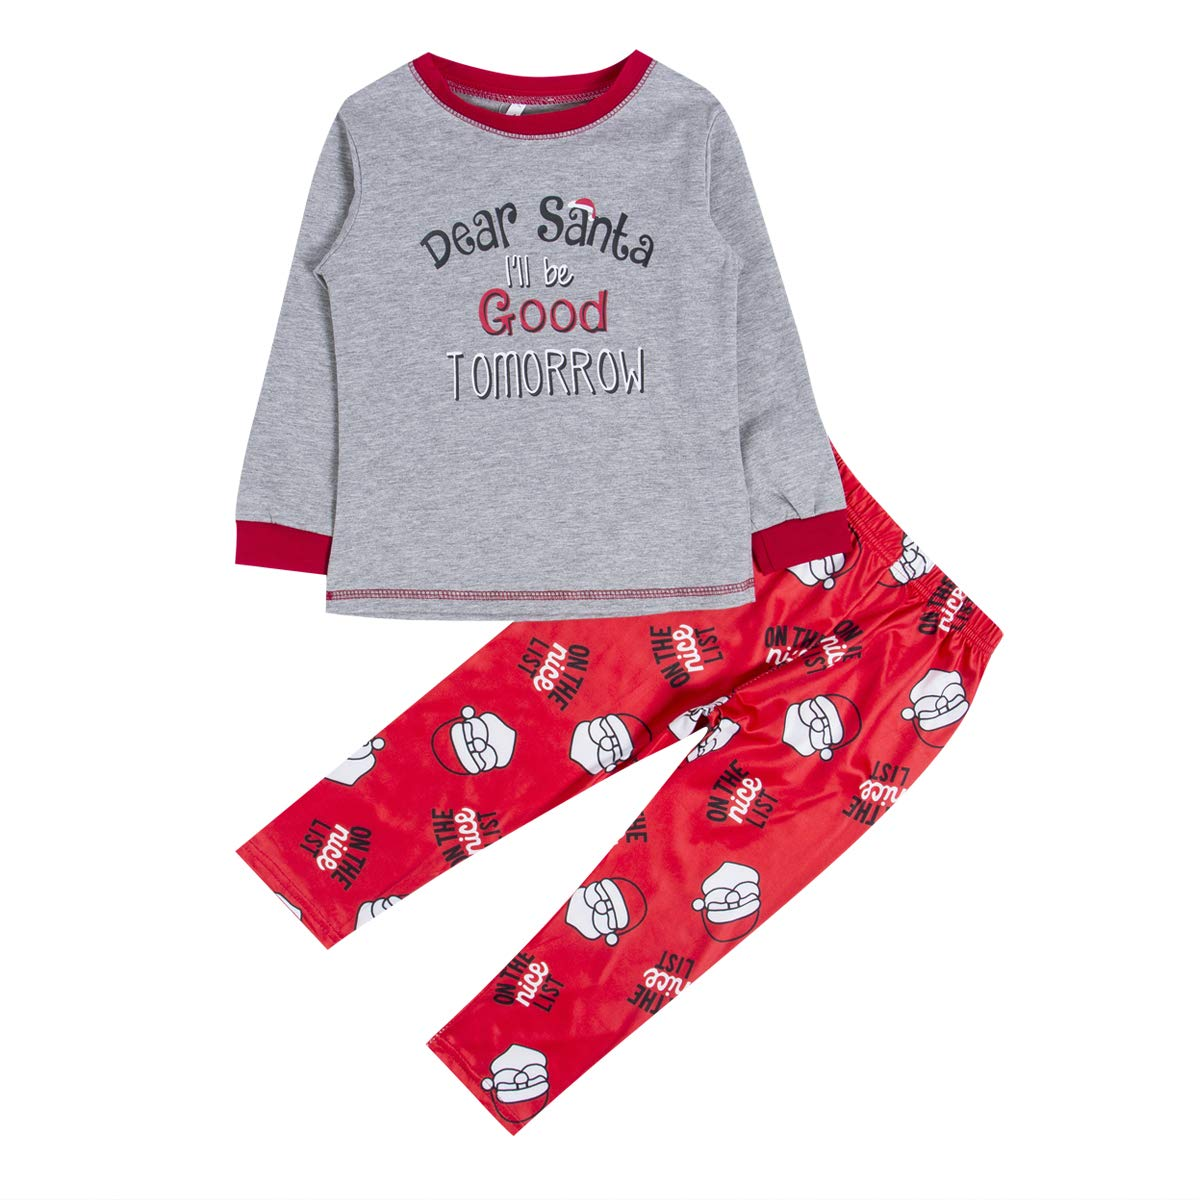 7a0b07adc Amazon.com  Pettstore Cotton Parent-Child Outfit Santa Pyjamas Set ...